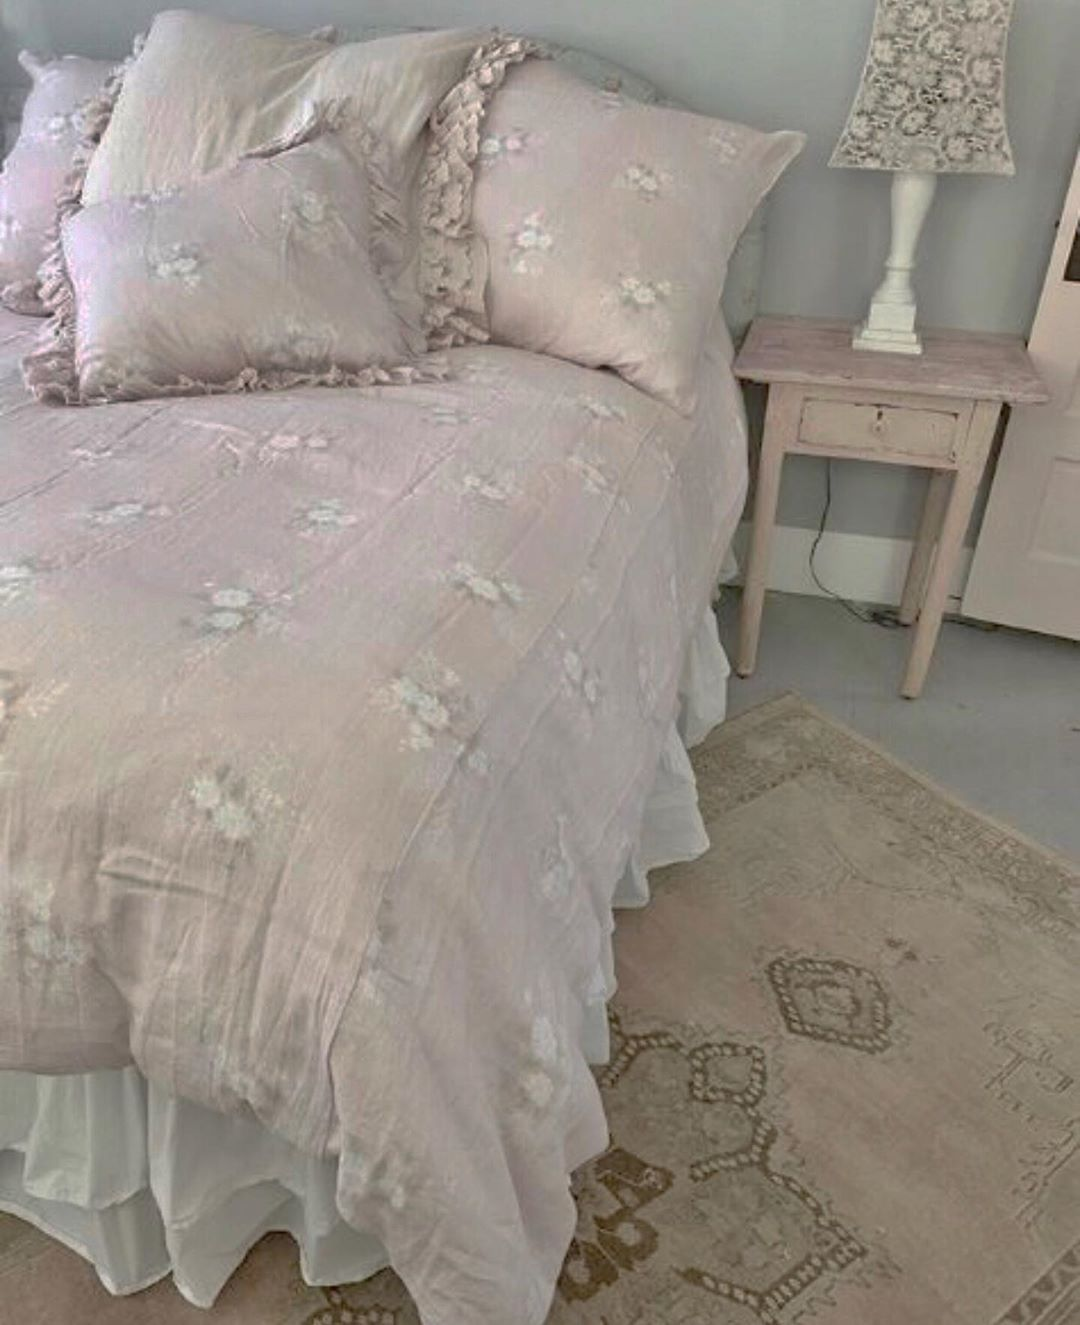 Rapport Evelyn Pink White Vintage Floral Lace Edge Duvet Cover Bedding All Sizes